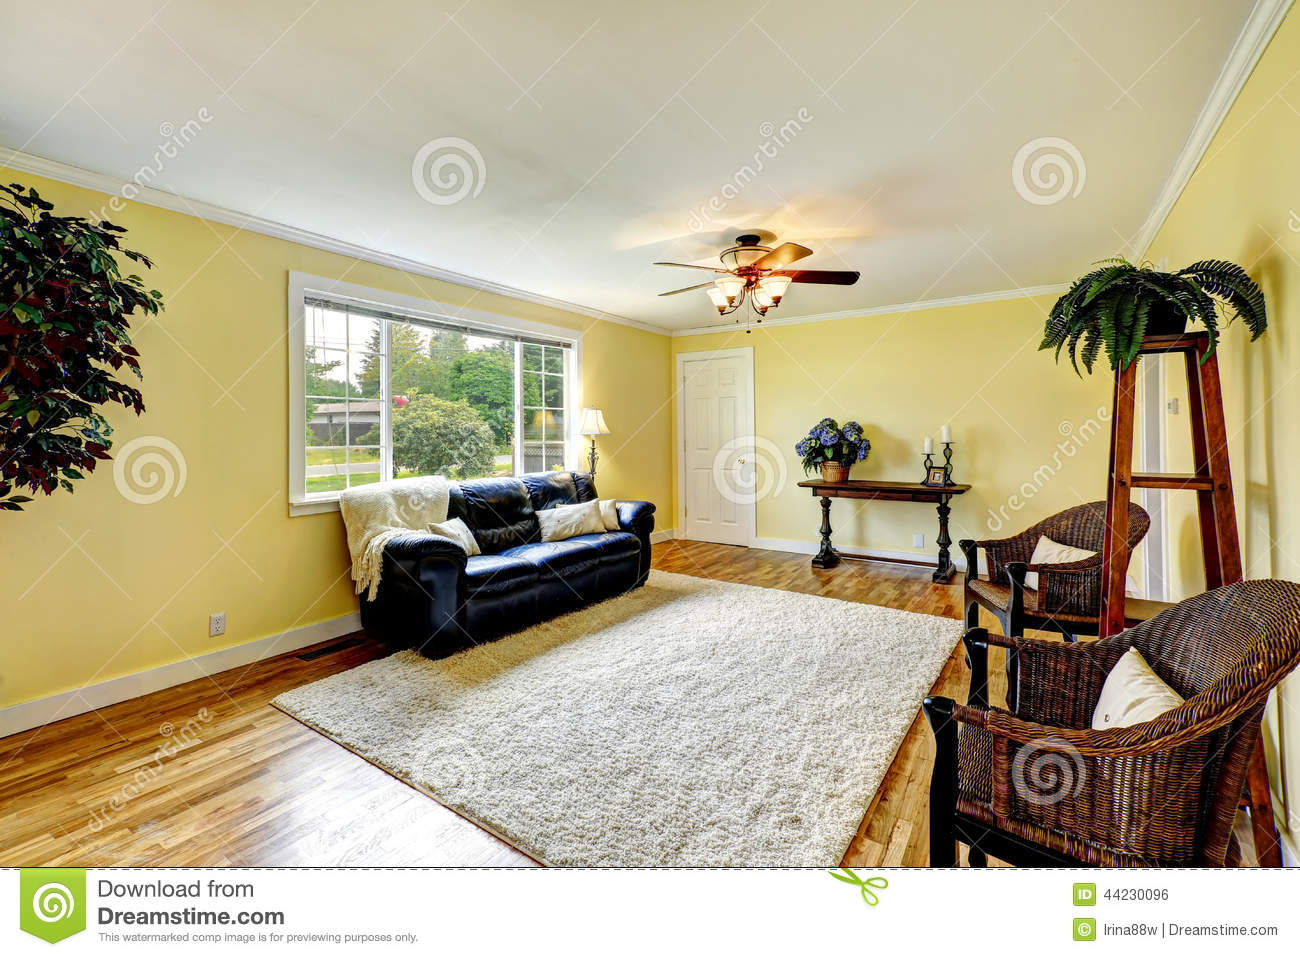 Bright Living Room With Yellow And Red Walls Stock Photo - Image of ...